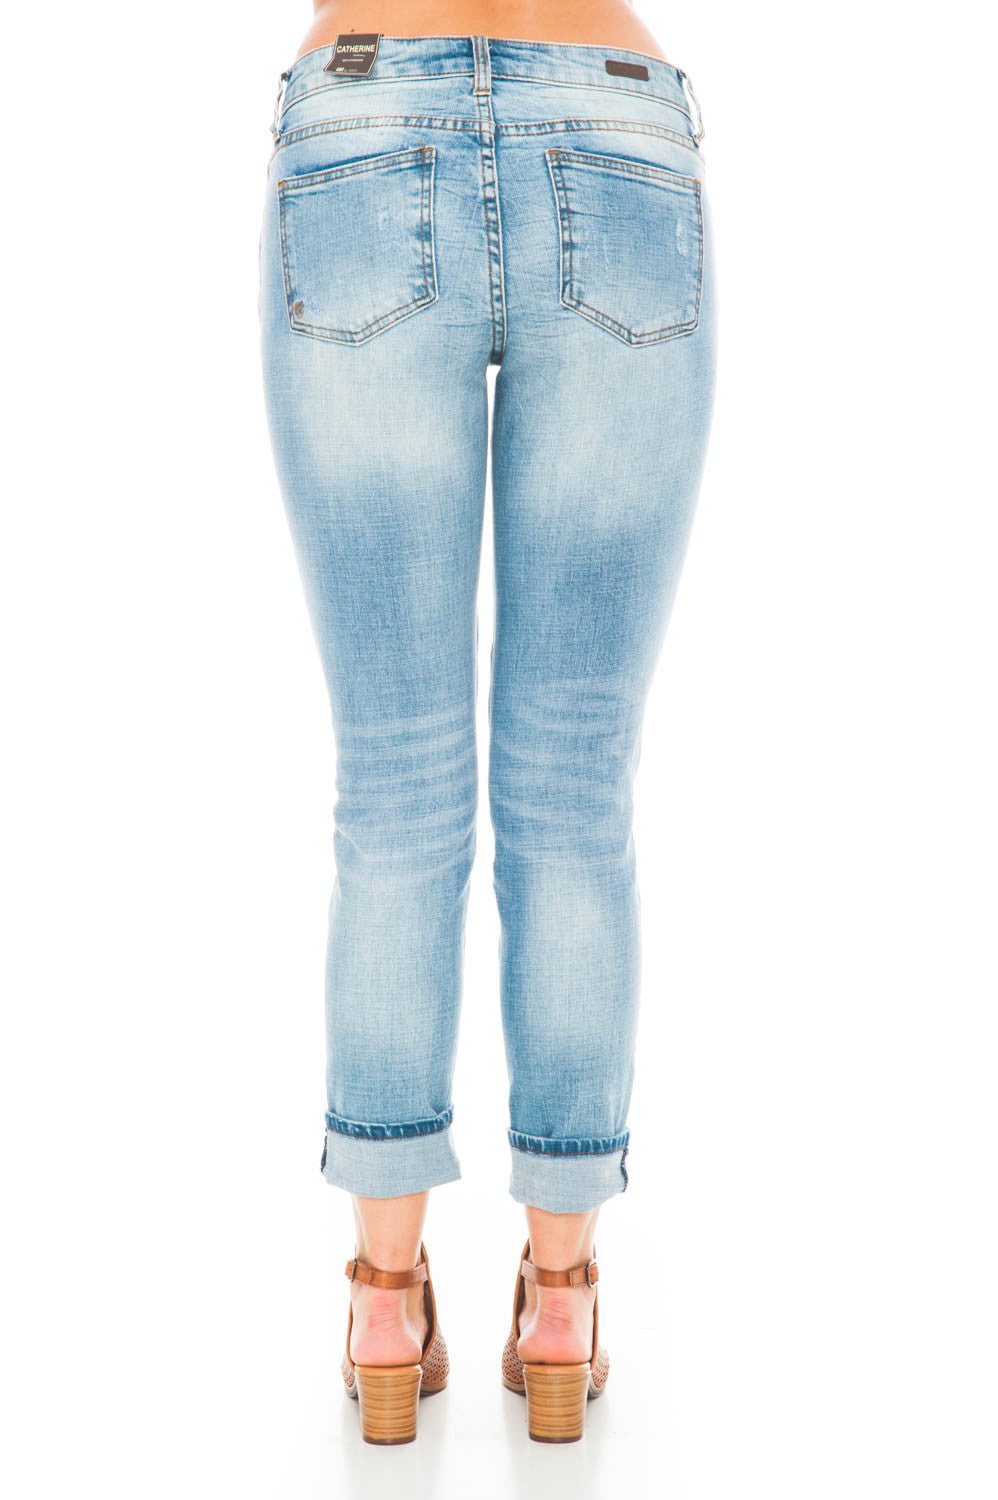 Jean - Catherine Boyfriend Hail Mid-rise by Kut from the Kloth